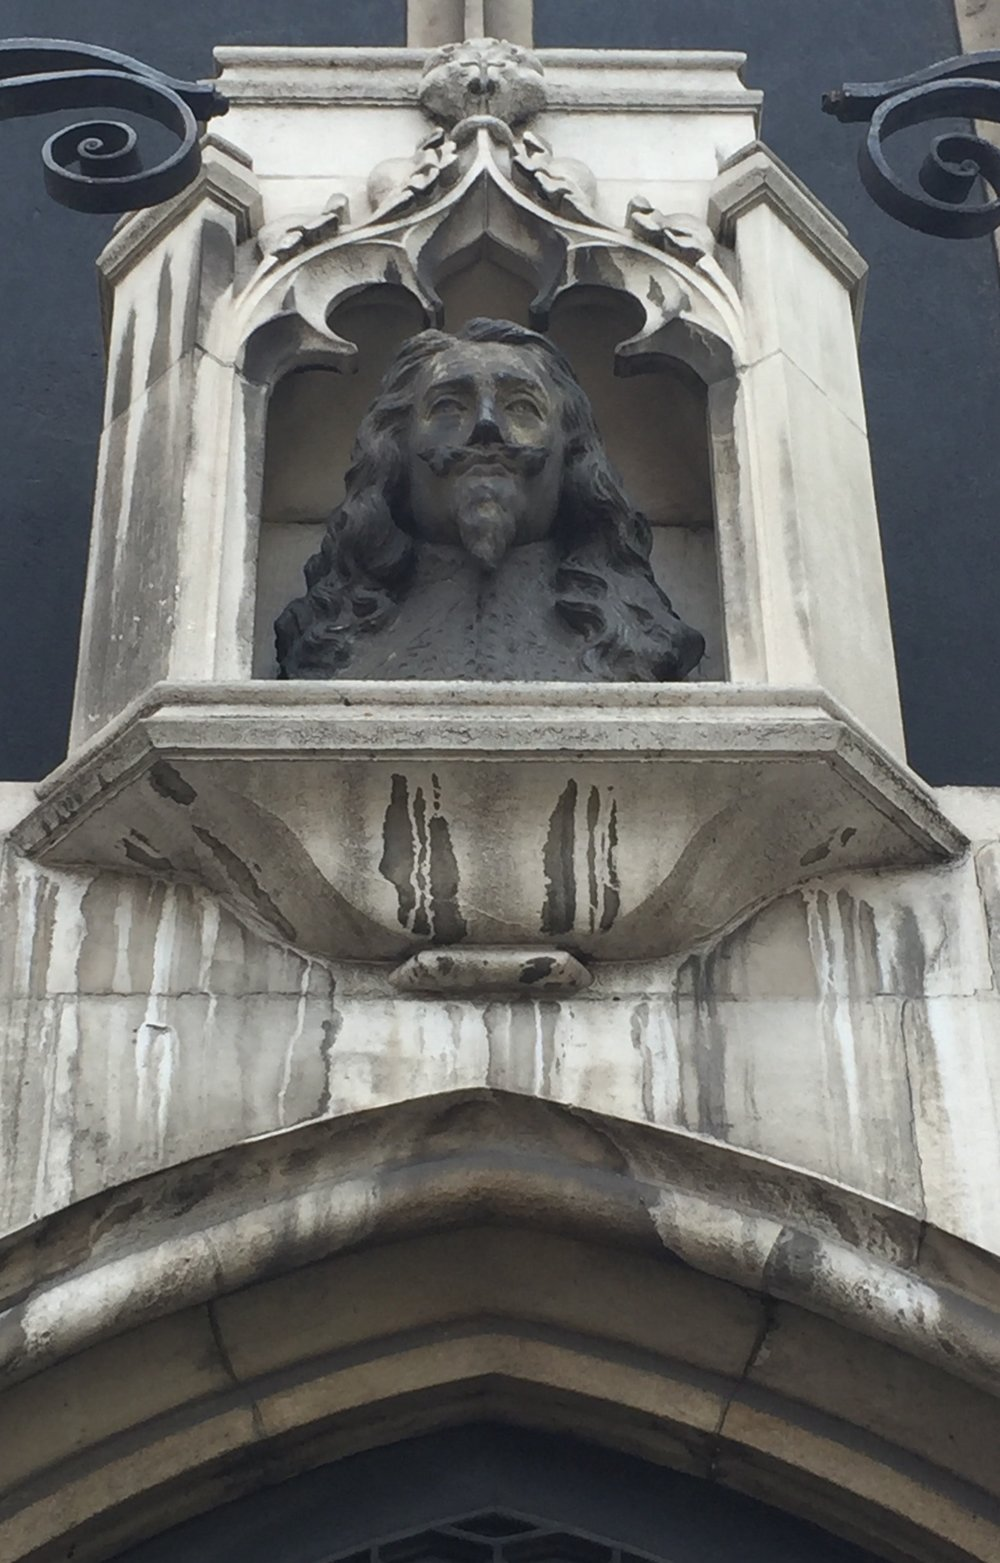 Statue of Charles I, Westminster. Image by Rachel Hammersley.